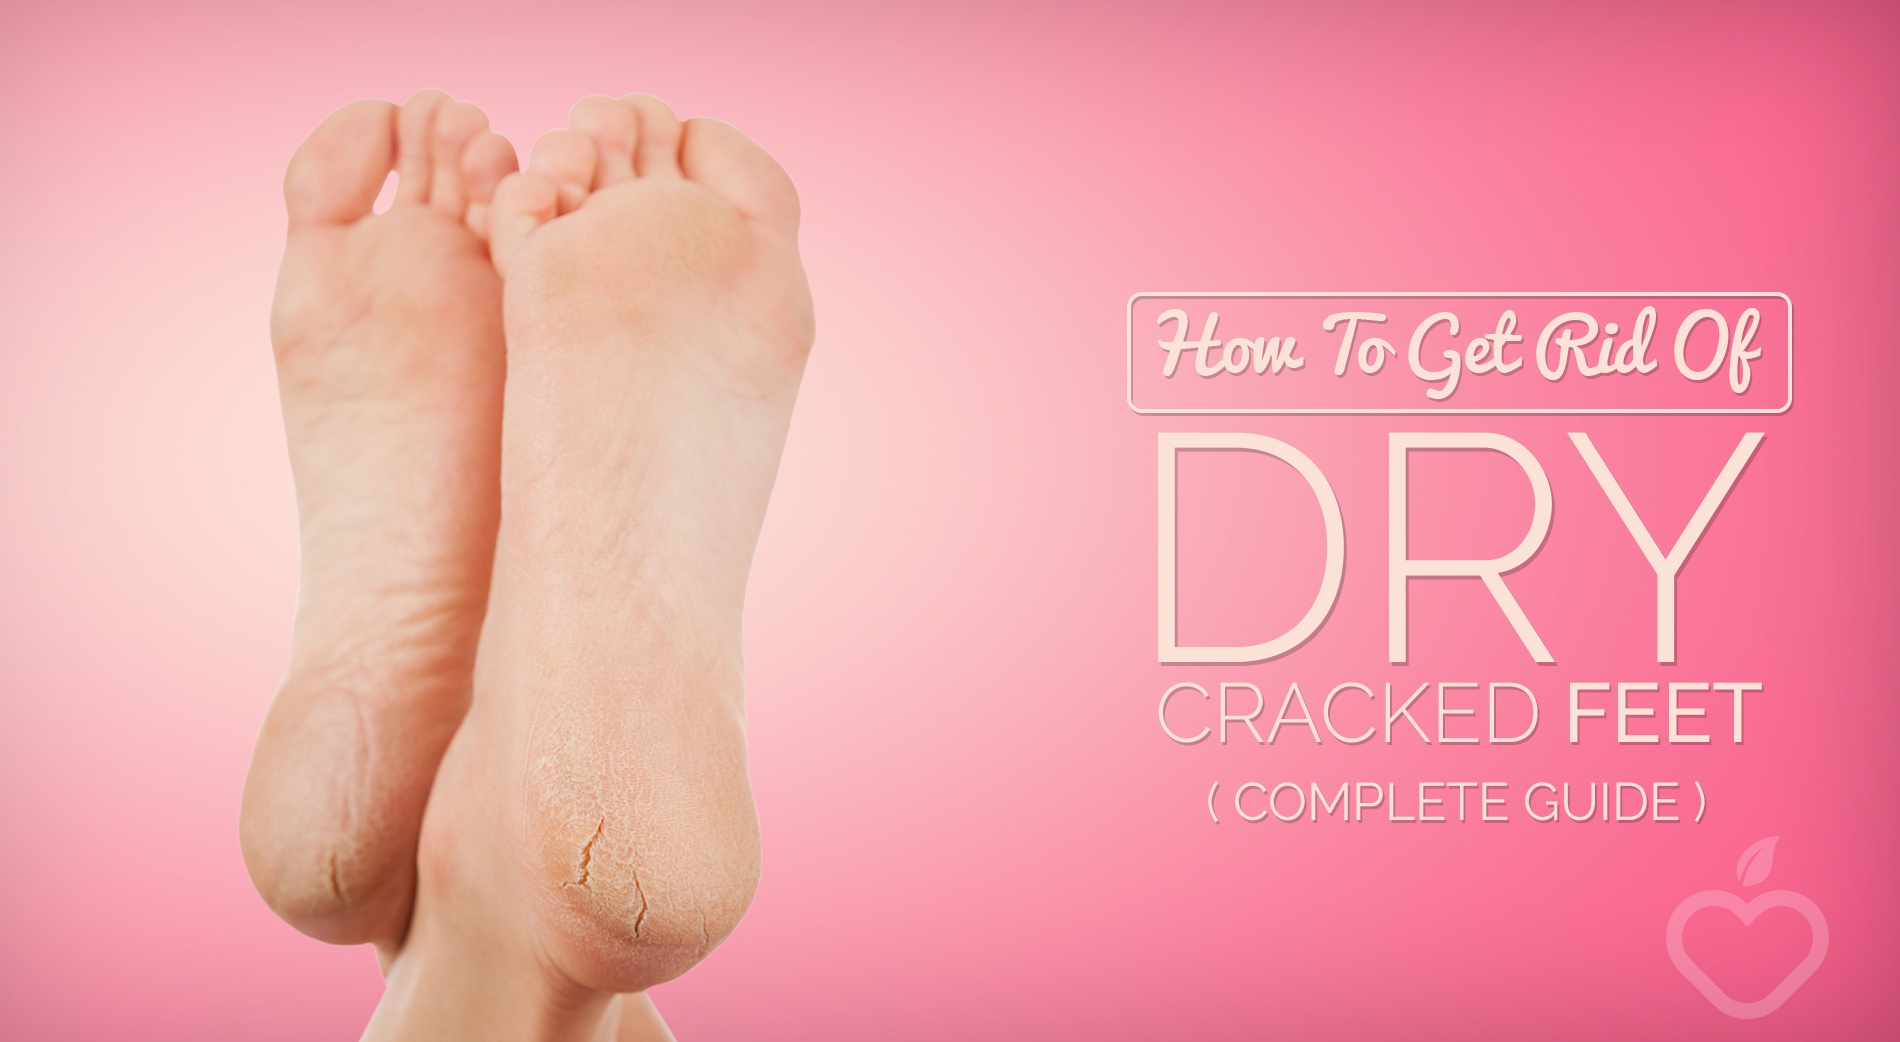 Types Of Foot Pain And How To Get Rid Of It Manual Guide